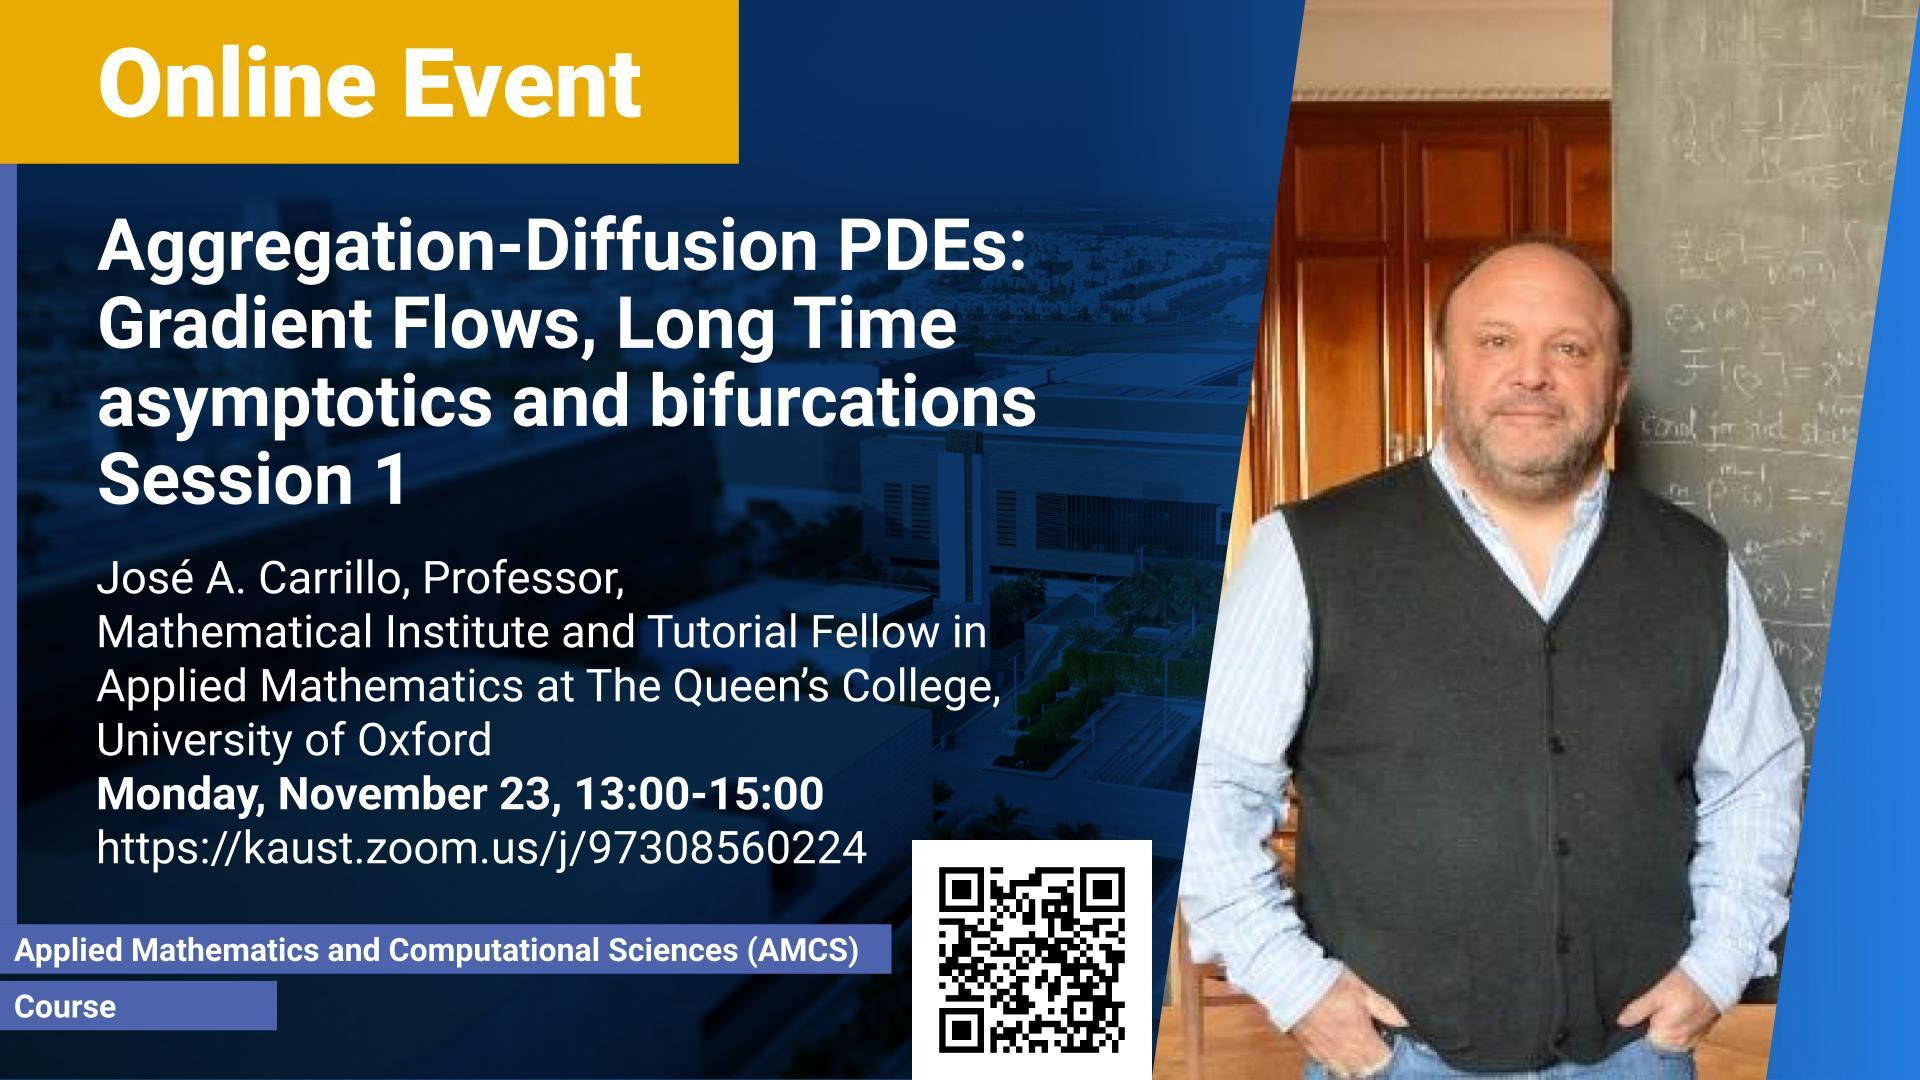 KAUST CEMSE AMCS Jose Carrillo Aggregation Diffusion PDEs Gradient Flows Long Time asymptotics and bifurcations Session 1